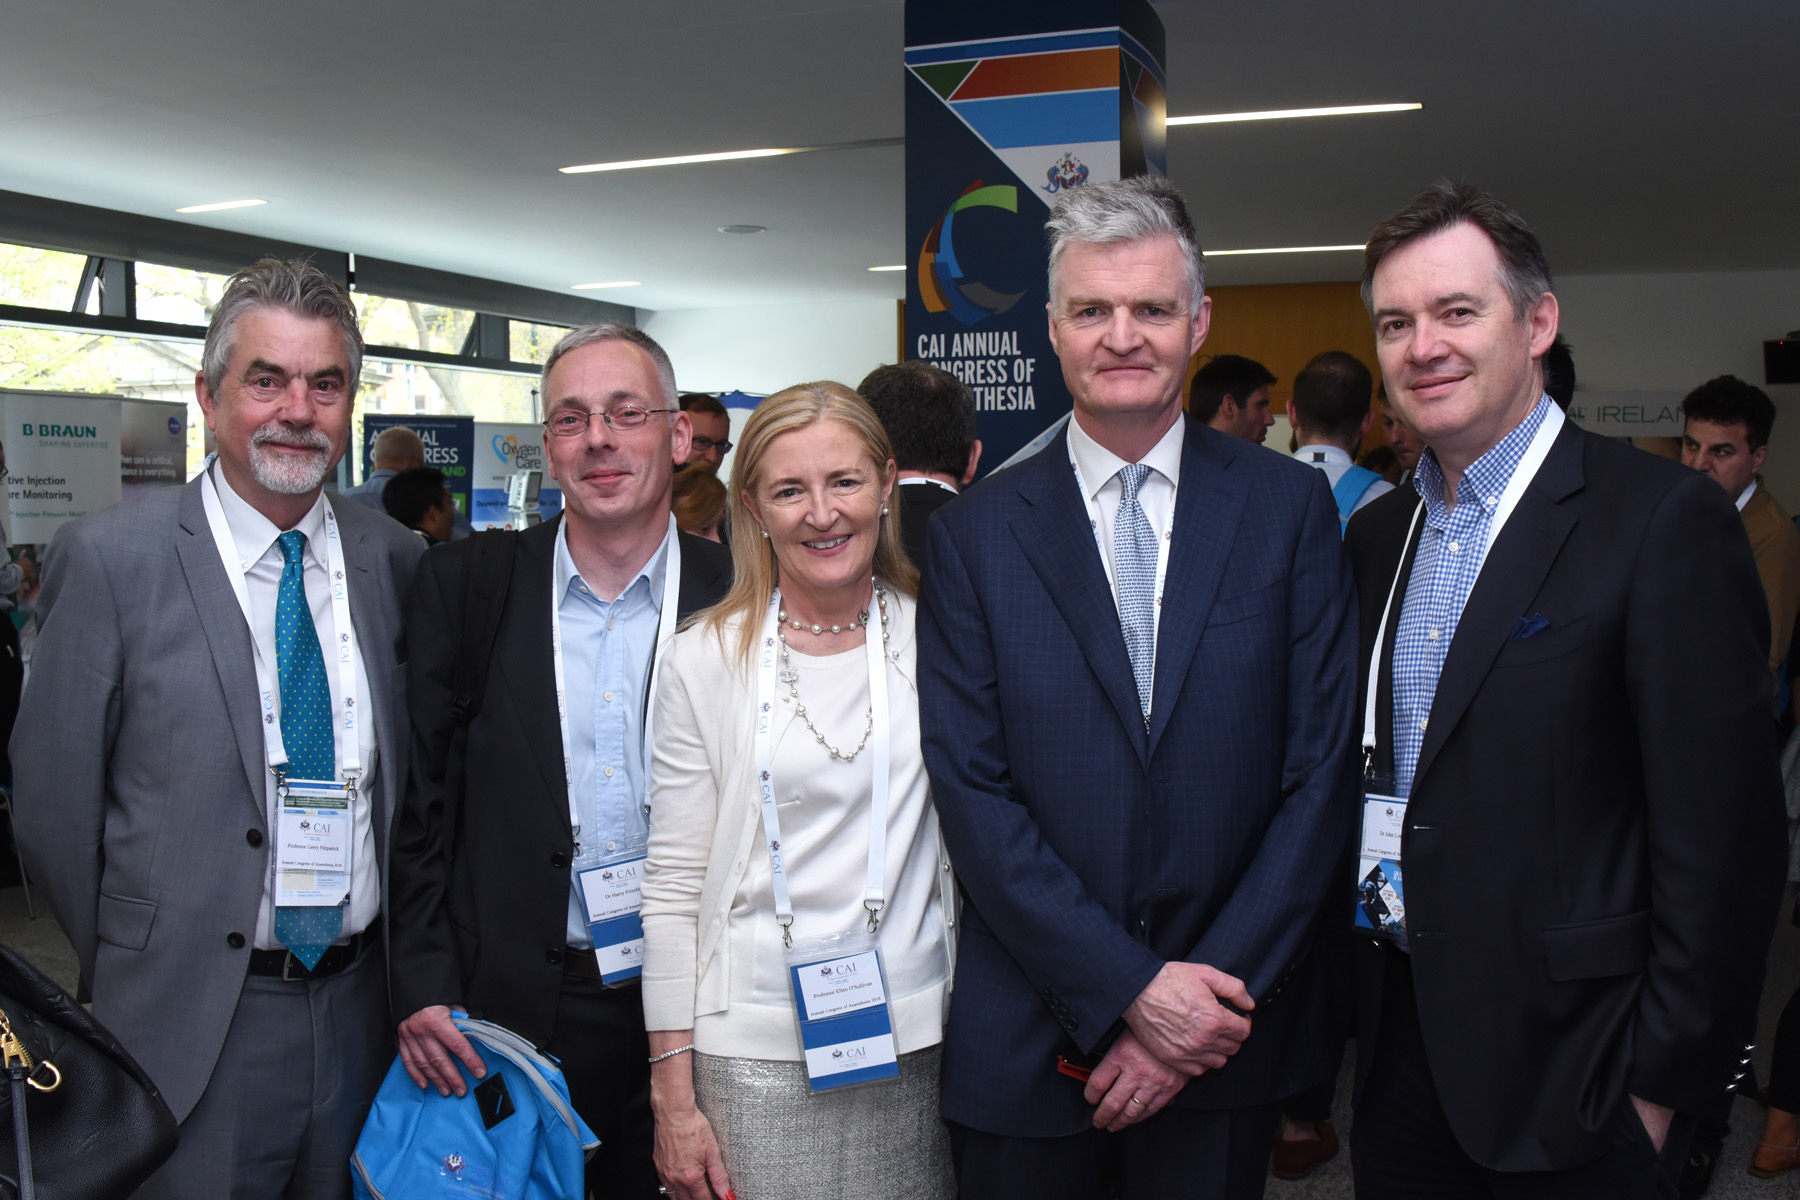 College of Anaesthetists of Ireland Annual Congress 2018 - Prof Gerry Fitzpatrick, Dr Harry Frizelle, Prof Ellen O'Sullivan, Prof Brian Kinirons, Dr John Loughrey